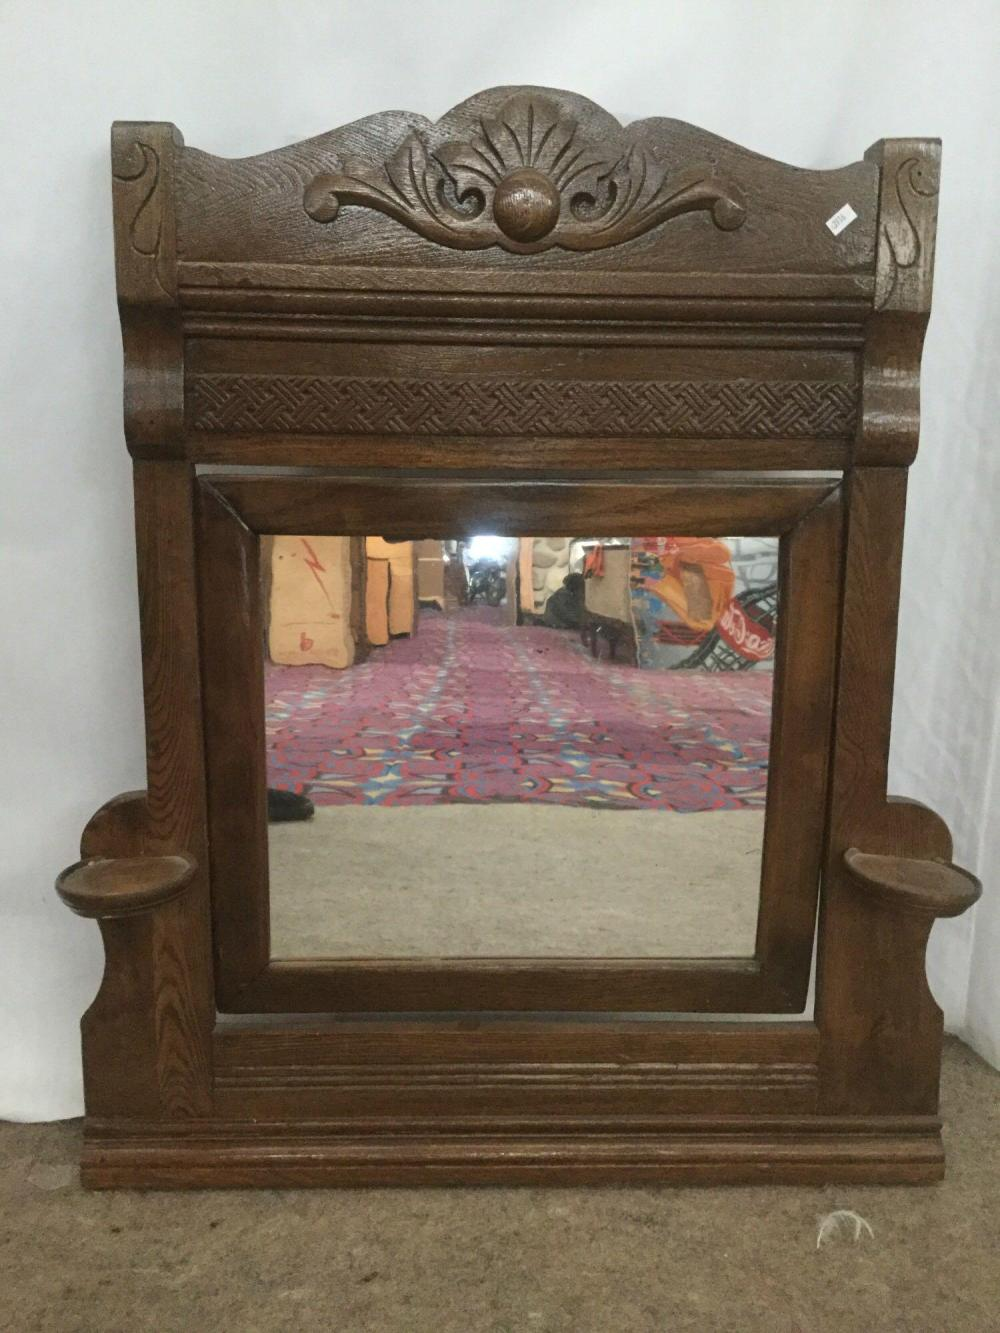 Sold Price Small Antique Dresser Top Vanity Mirror With Candle Shelves Carved Molding October 6 0119 12 00 Pm Pdt